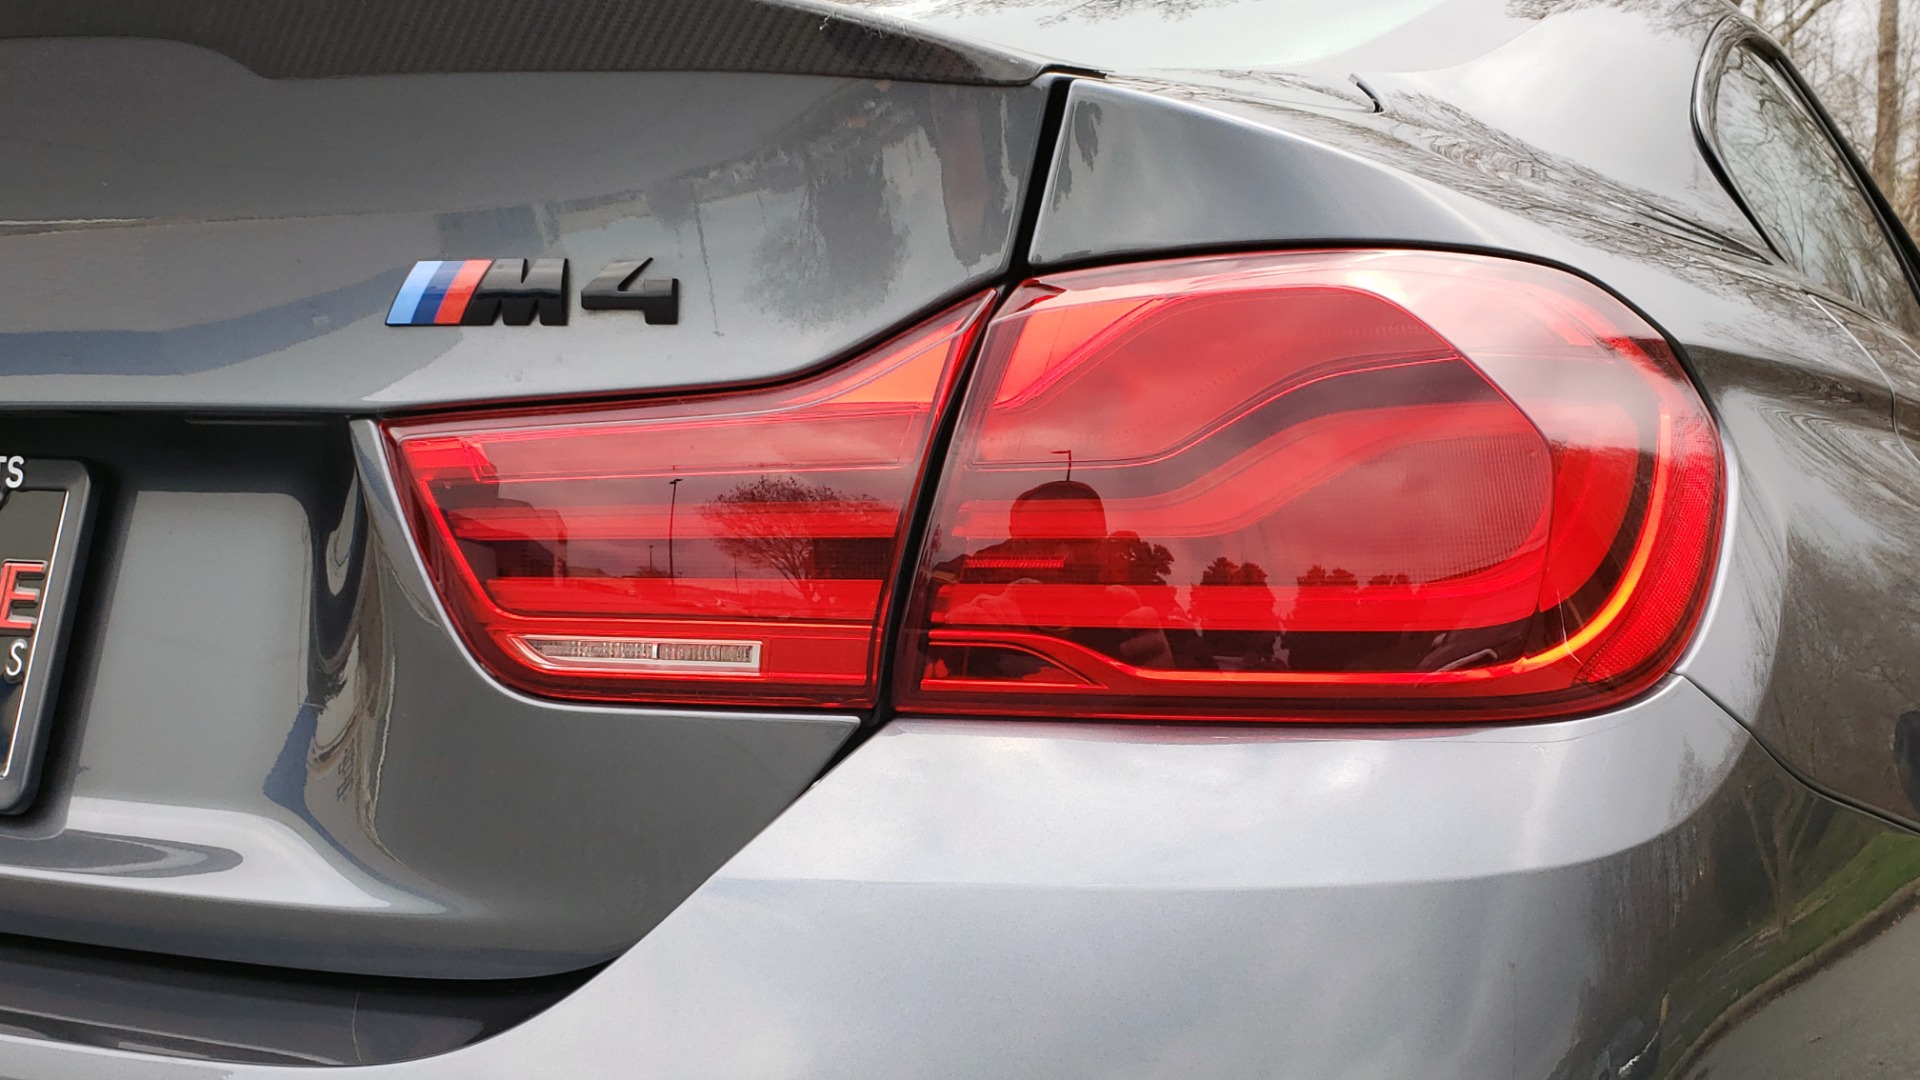 Used 2018 BMW M4 M-COMP / EXEC PKG / 7-SPD DBL CLUTCH / NAV / REARVIEW for sale Sold at Formula Imports in Charlotte NC 28227 56